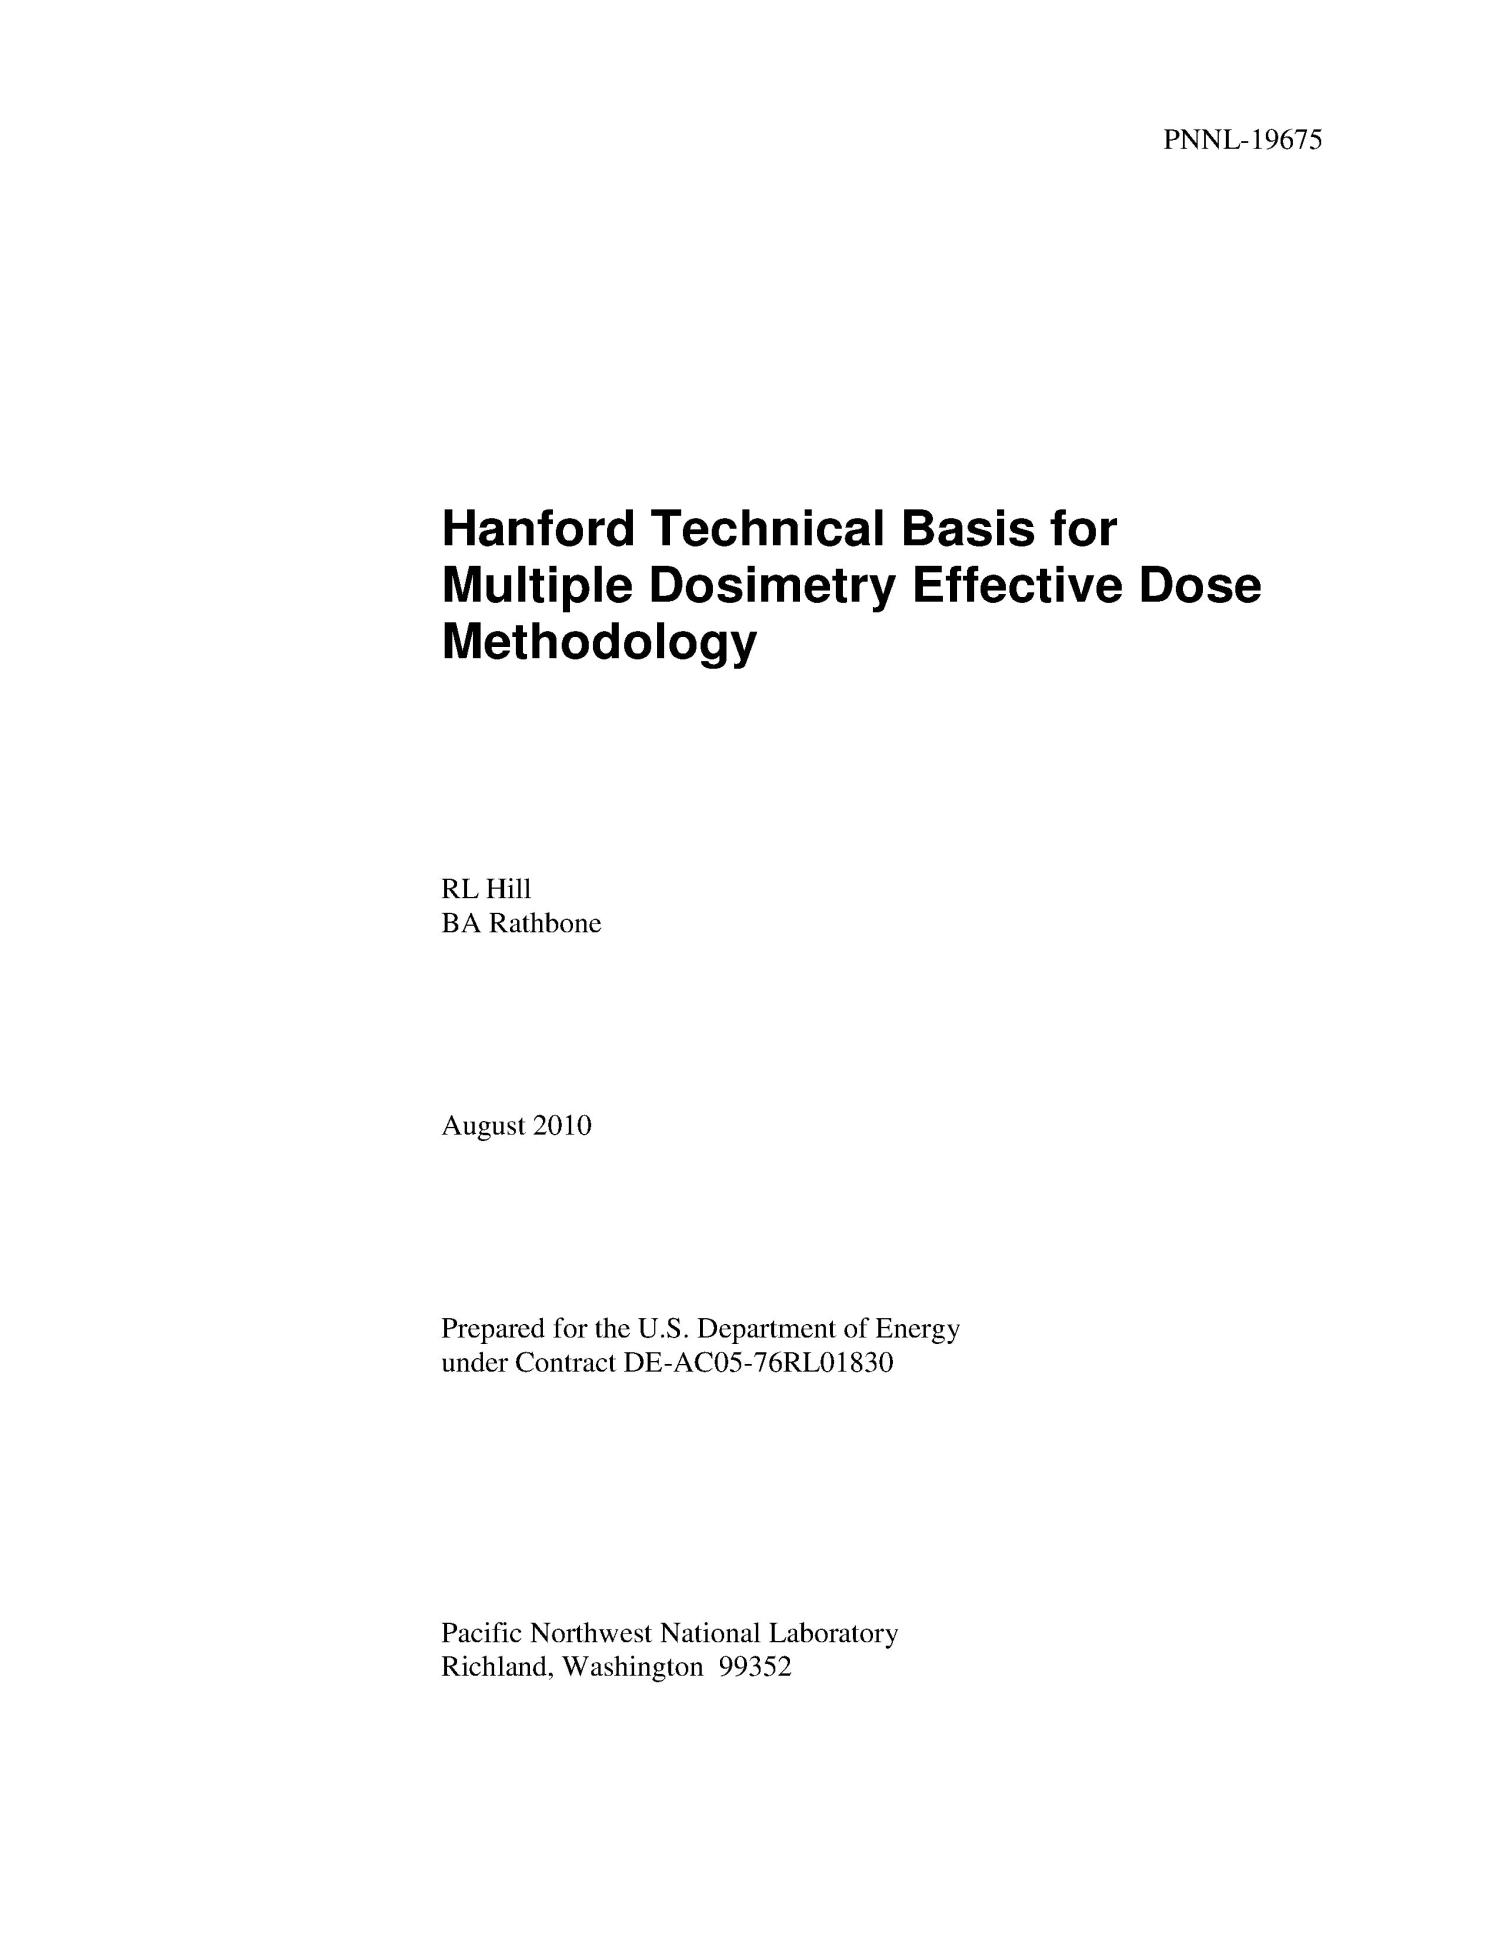 Hanford Technical Basis for Multiple Dosimetry Effective Dose Methodology                                                                                                      [Sequence #]: 3 of 15